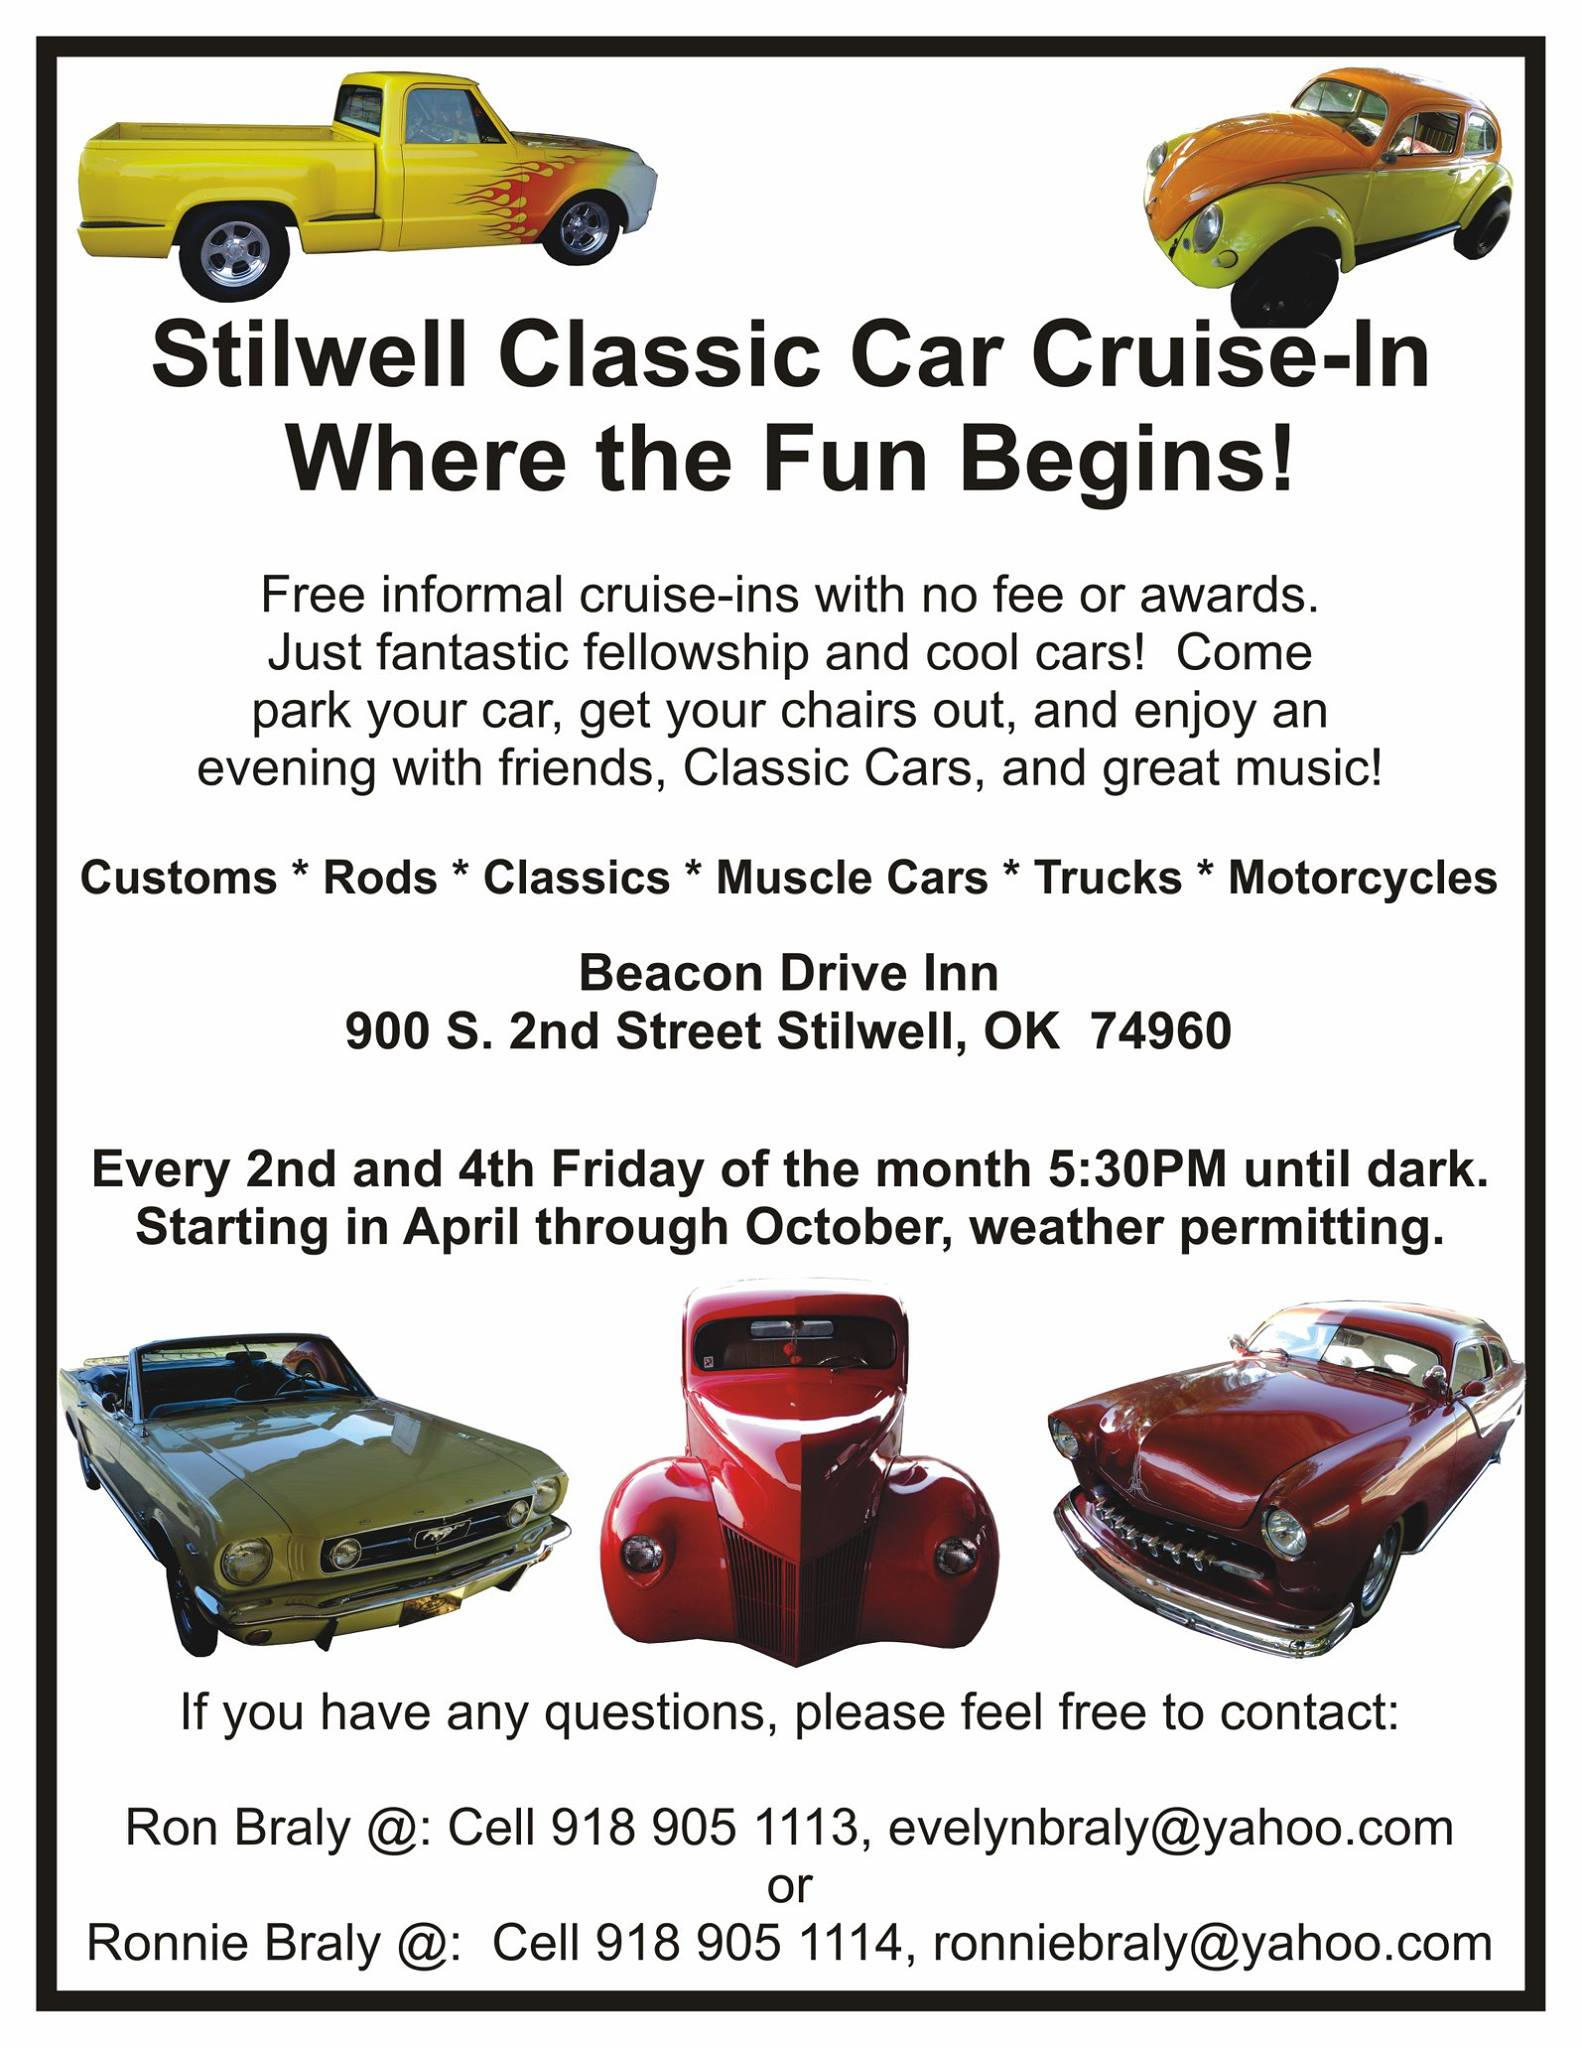 oklahoma area car shows and events listing we list oklahoma area stilwell ok every 2nd 4th friday 5 30 until dark at beacon drive inn 900 s 2nd street contact 918 905 1113